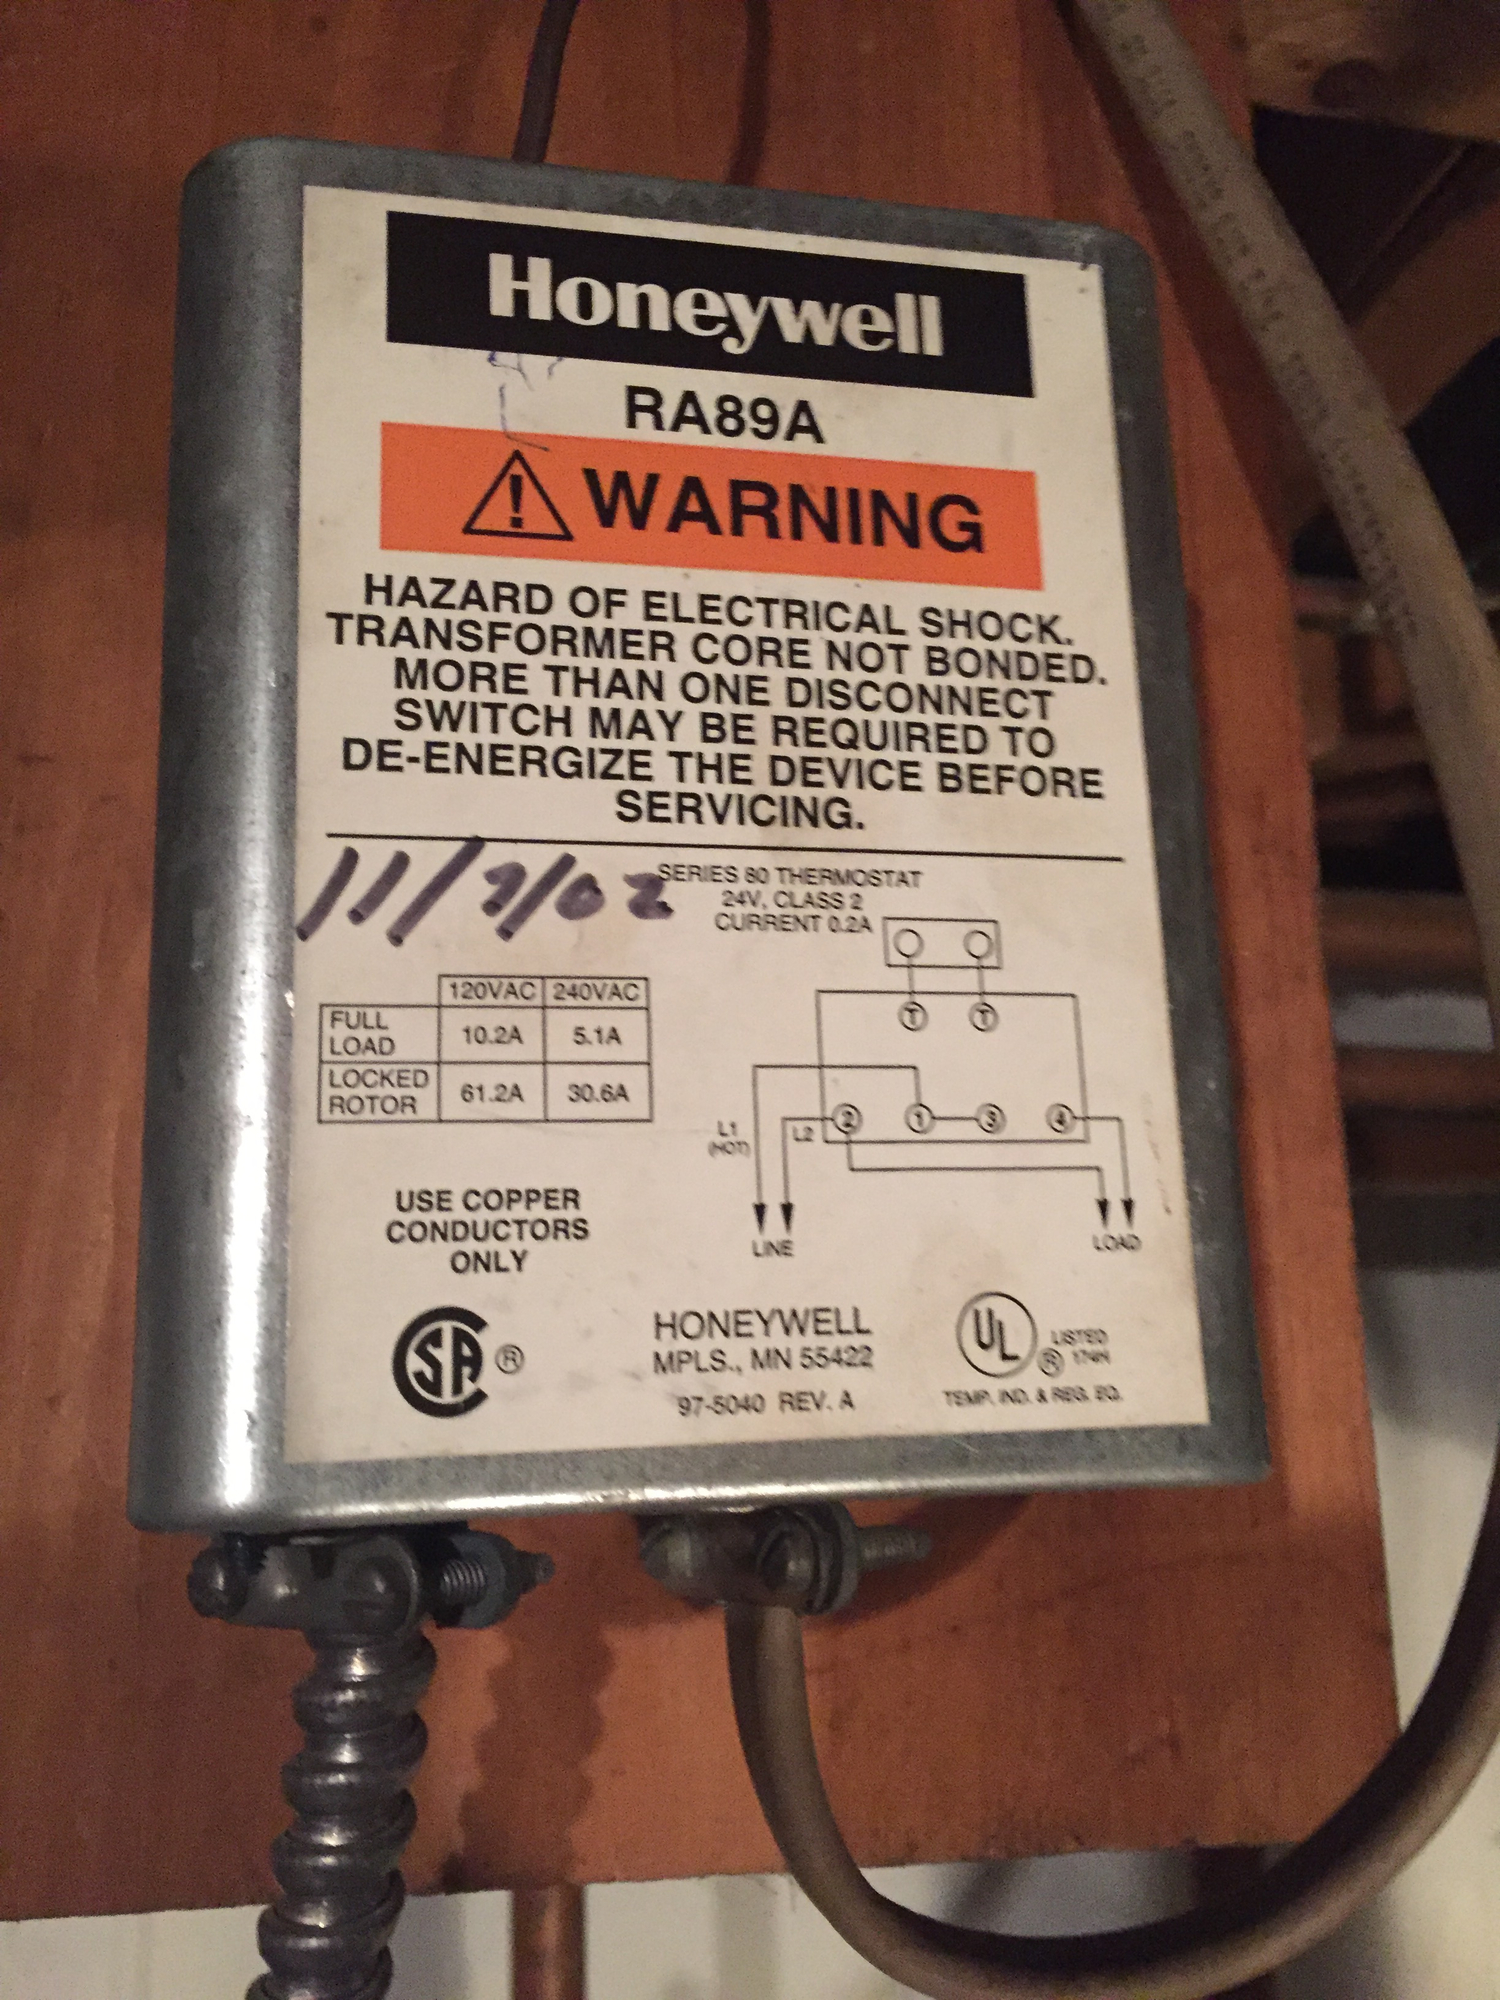 Only One of Two Zones Firing, Honeywell RA89A — Heating Help: The WallHeating Help: The Wall - HeatingHelp.com